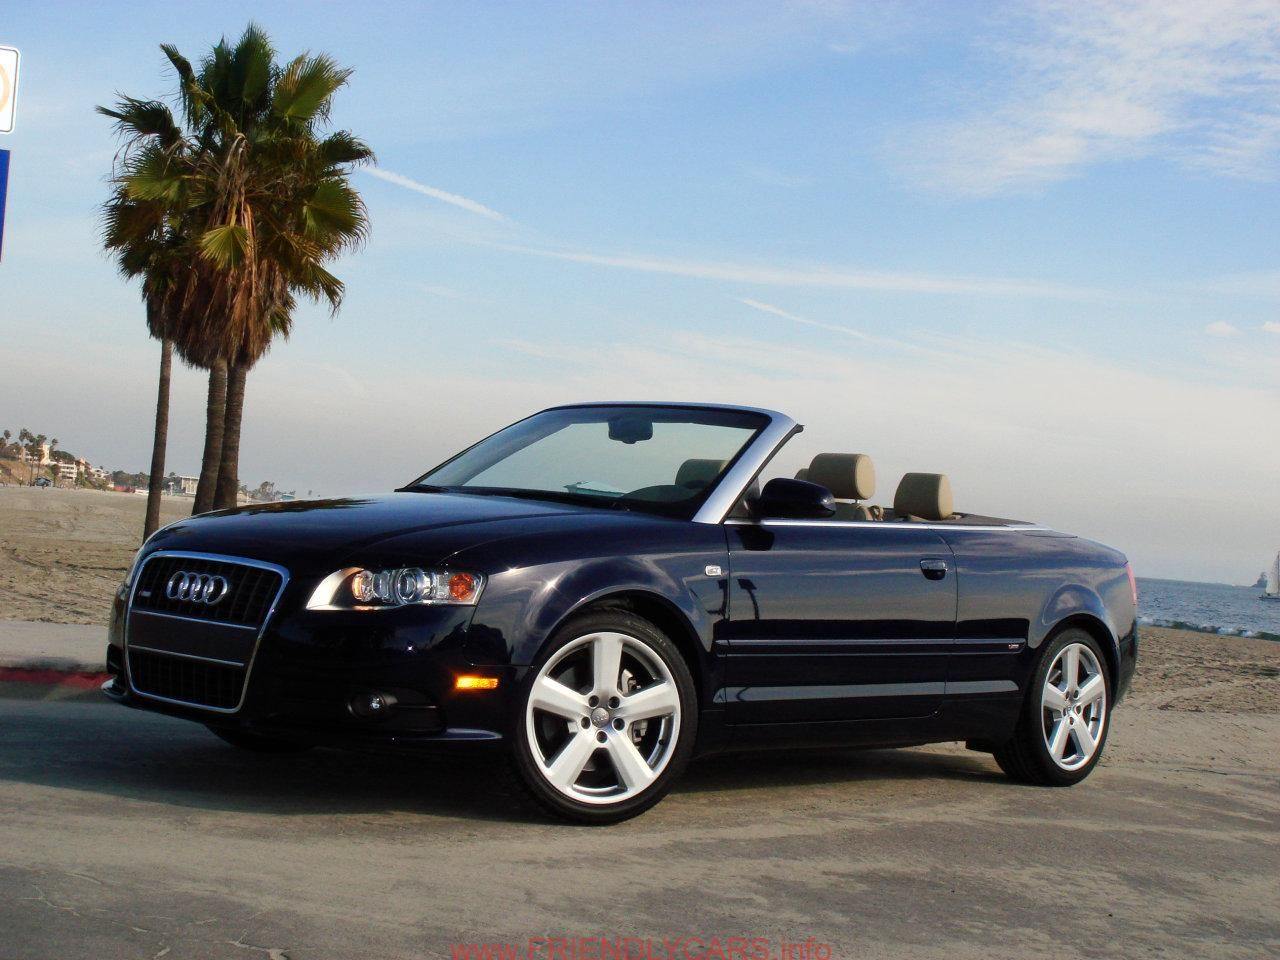 Awesome audi a4 2004 tuning car images hd audi a4 2 0 tfsi convertible tuned by